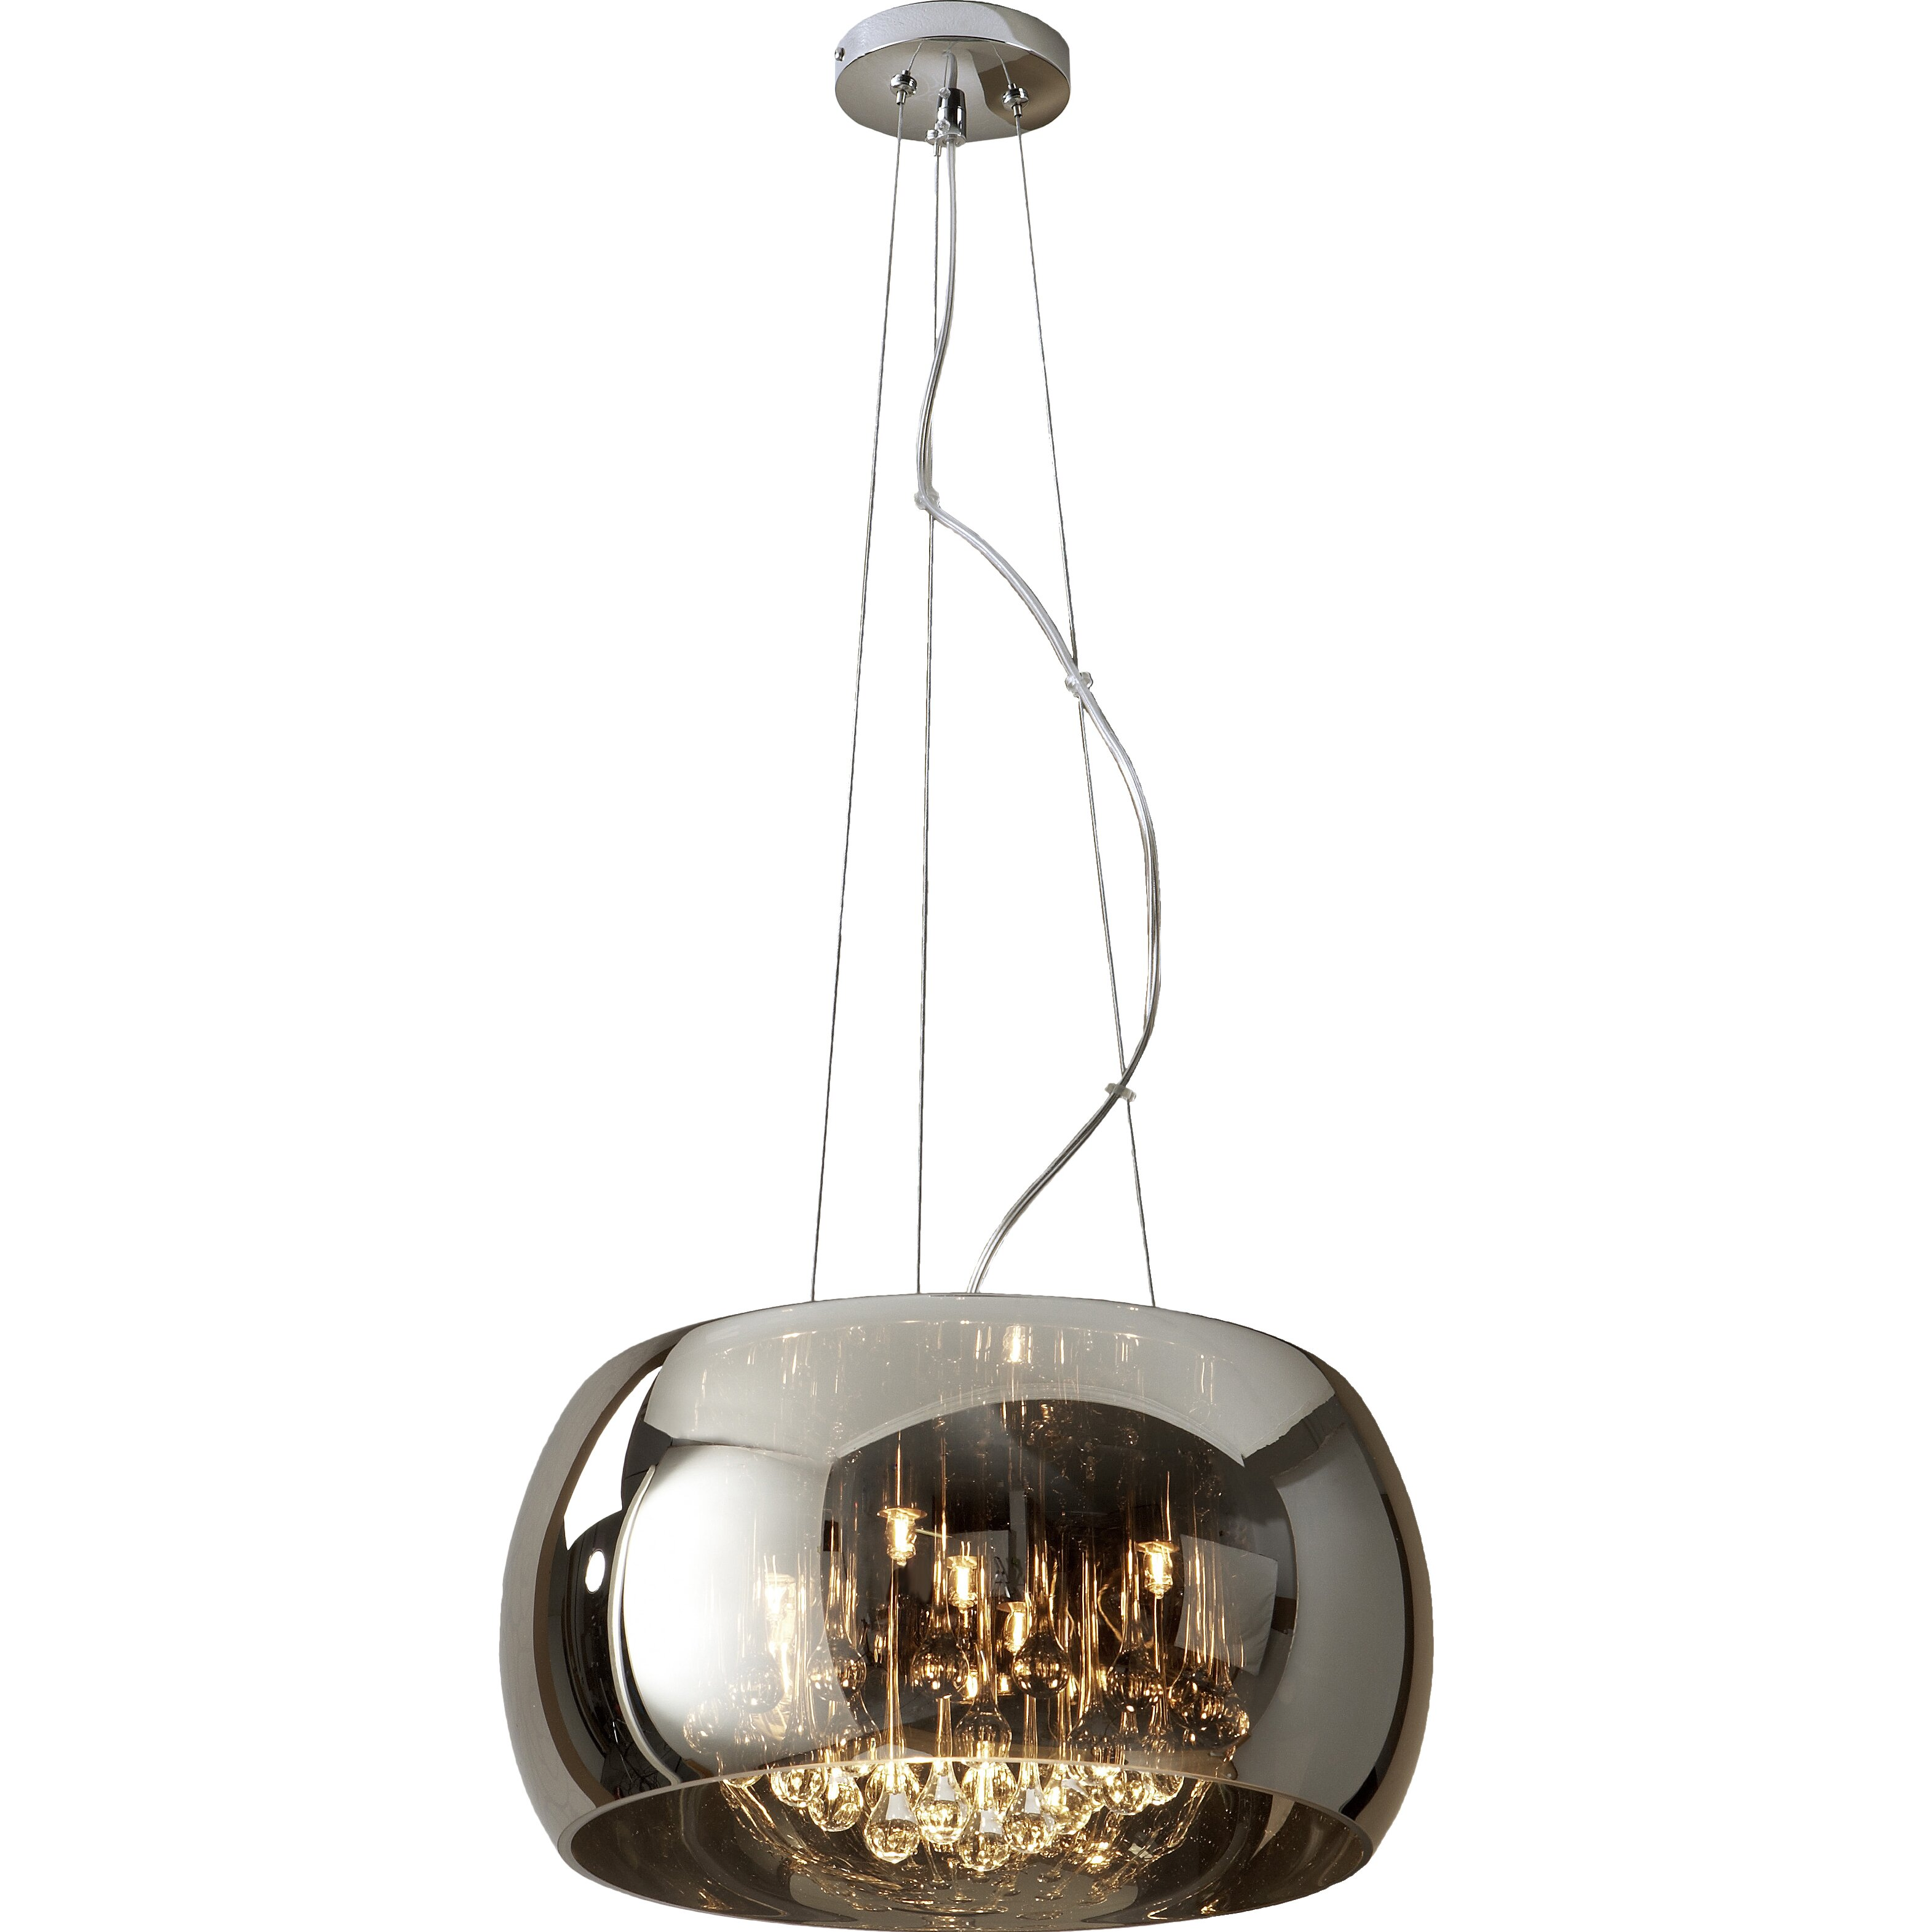 Schuller Argos 5 Light Glass Pendant & Reviews